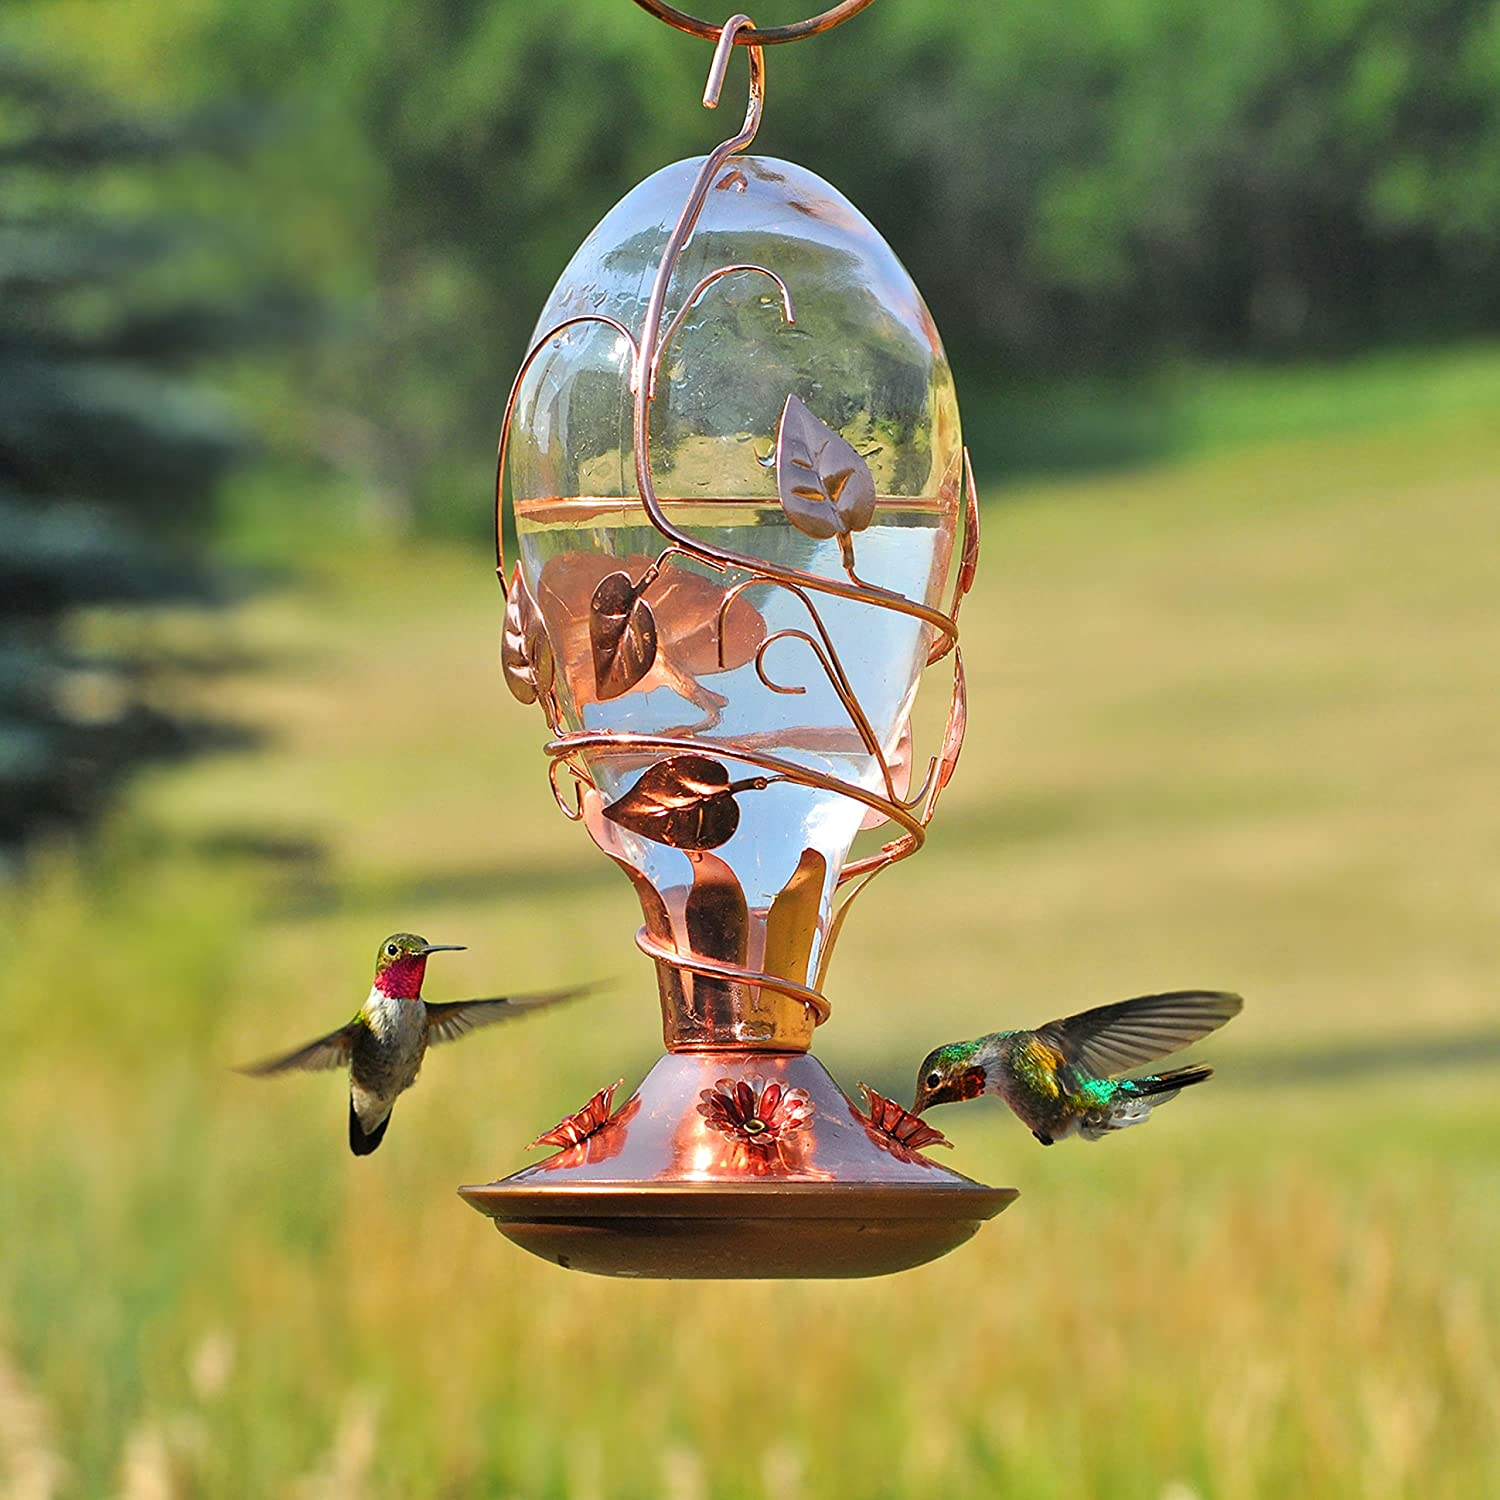 humingbird no spill product center shelmerdine hummingbird garden perky pet feeder